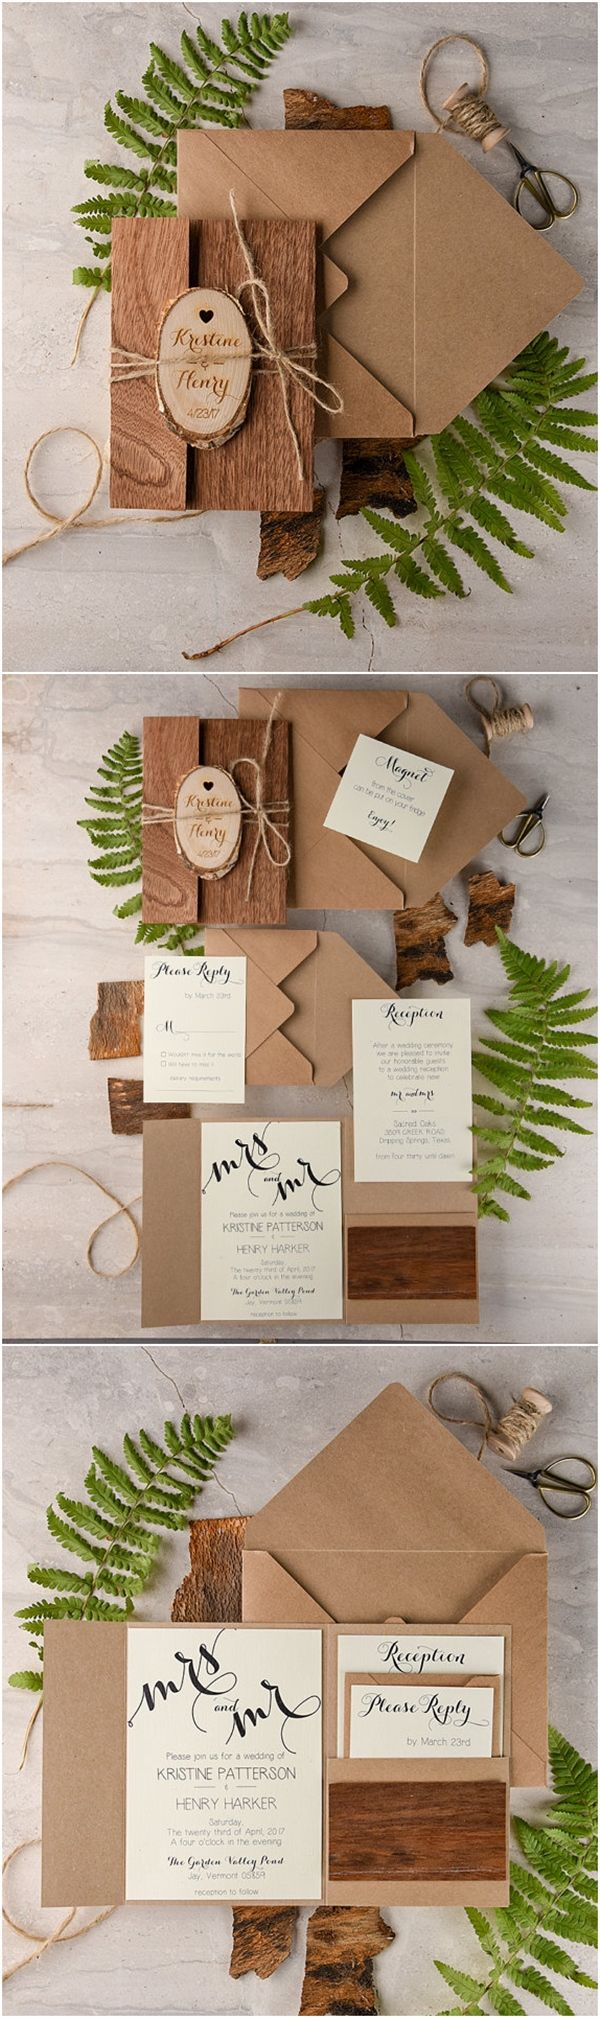 Recycled Eco Rustic Real Wood Wedding Invitations / http://www.deerpearlflowers.com/rustic-wedding-invitations/